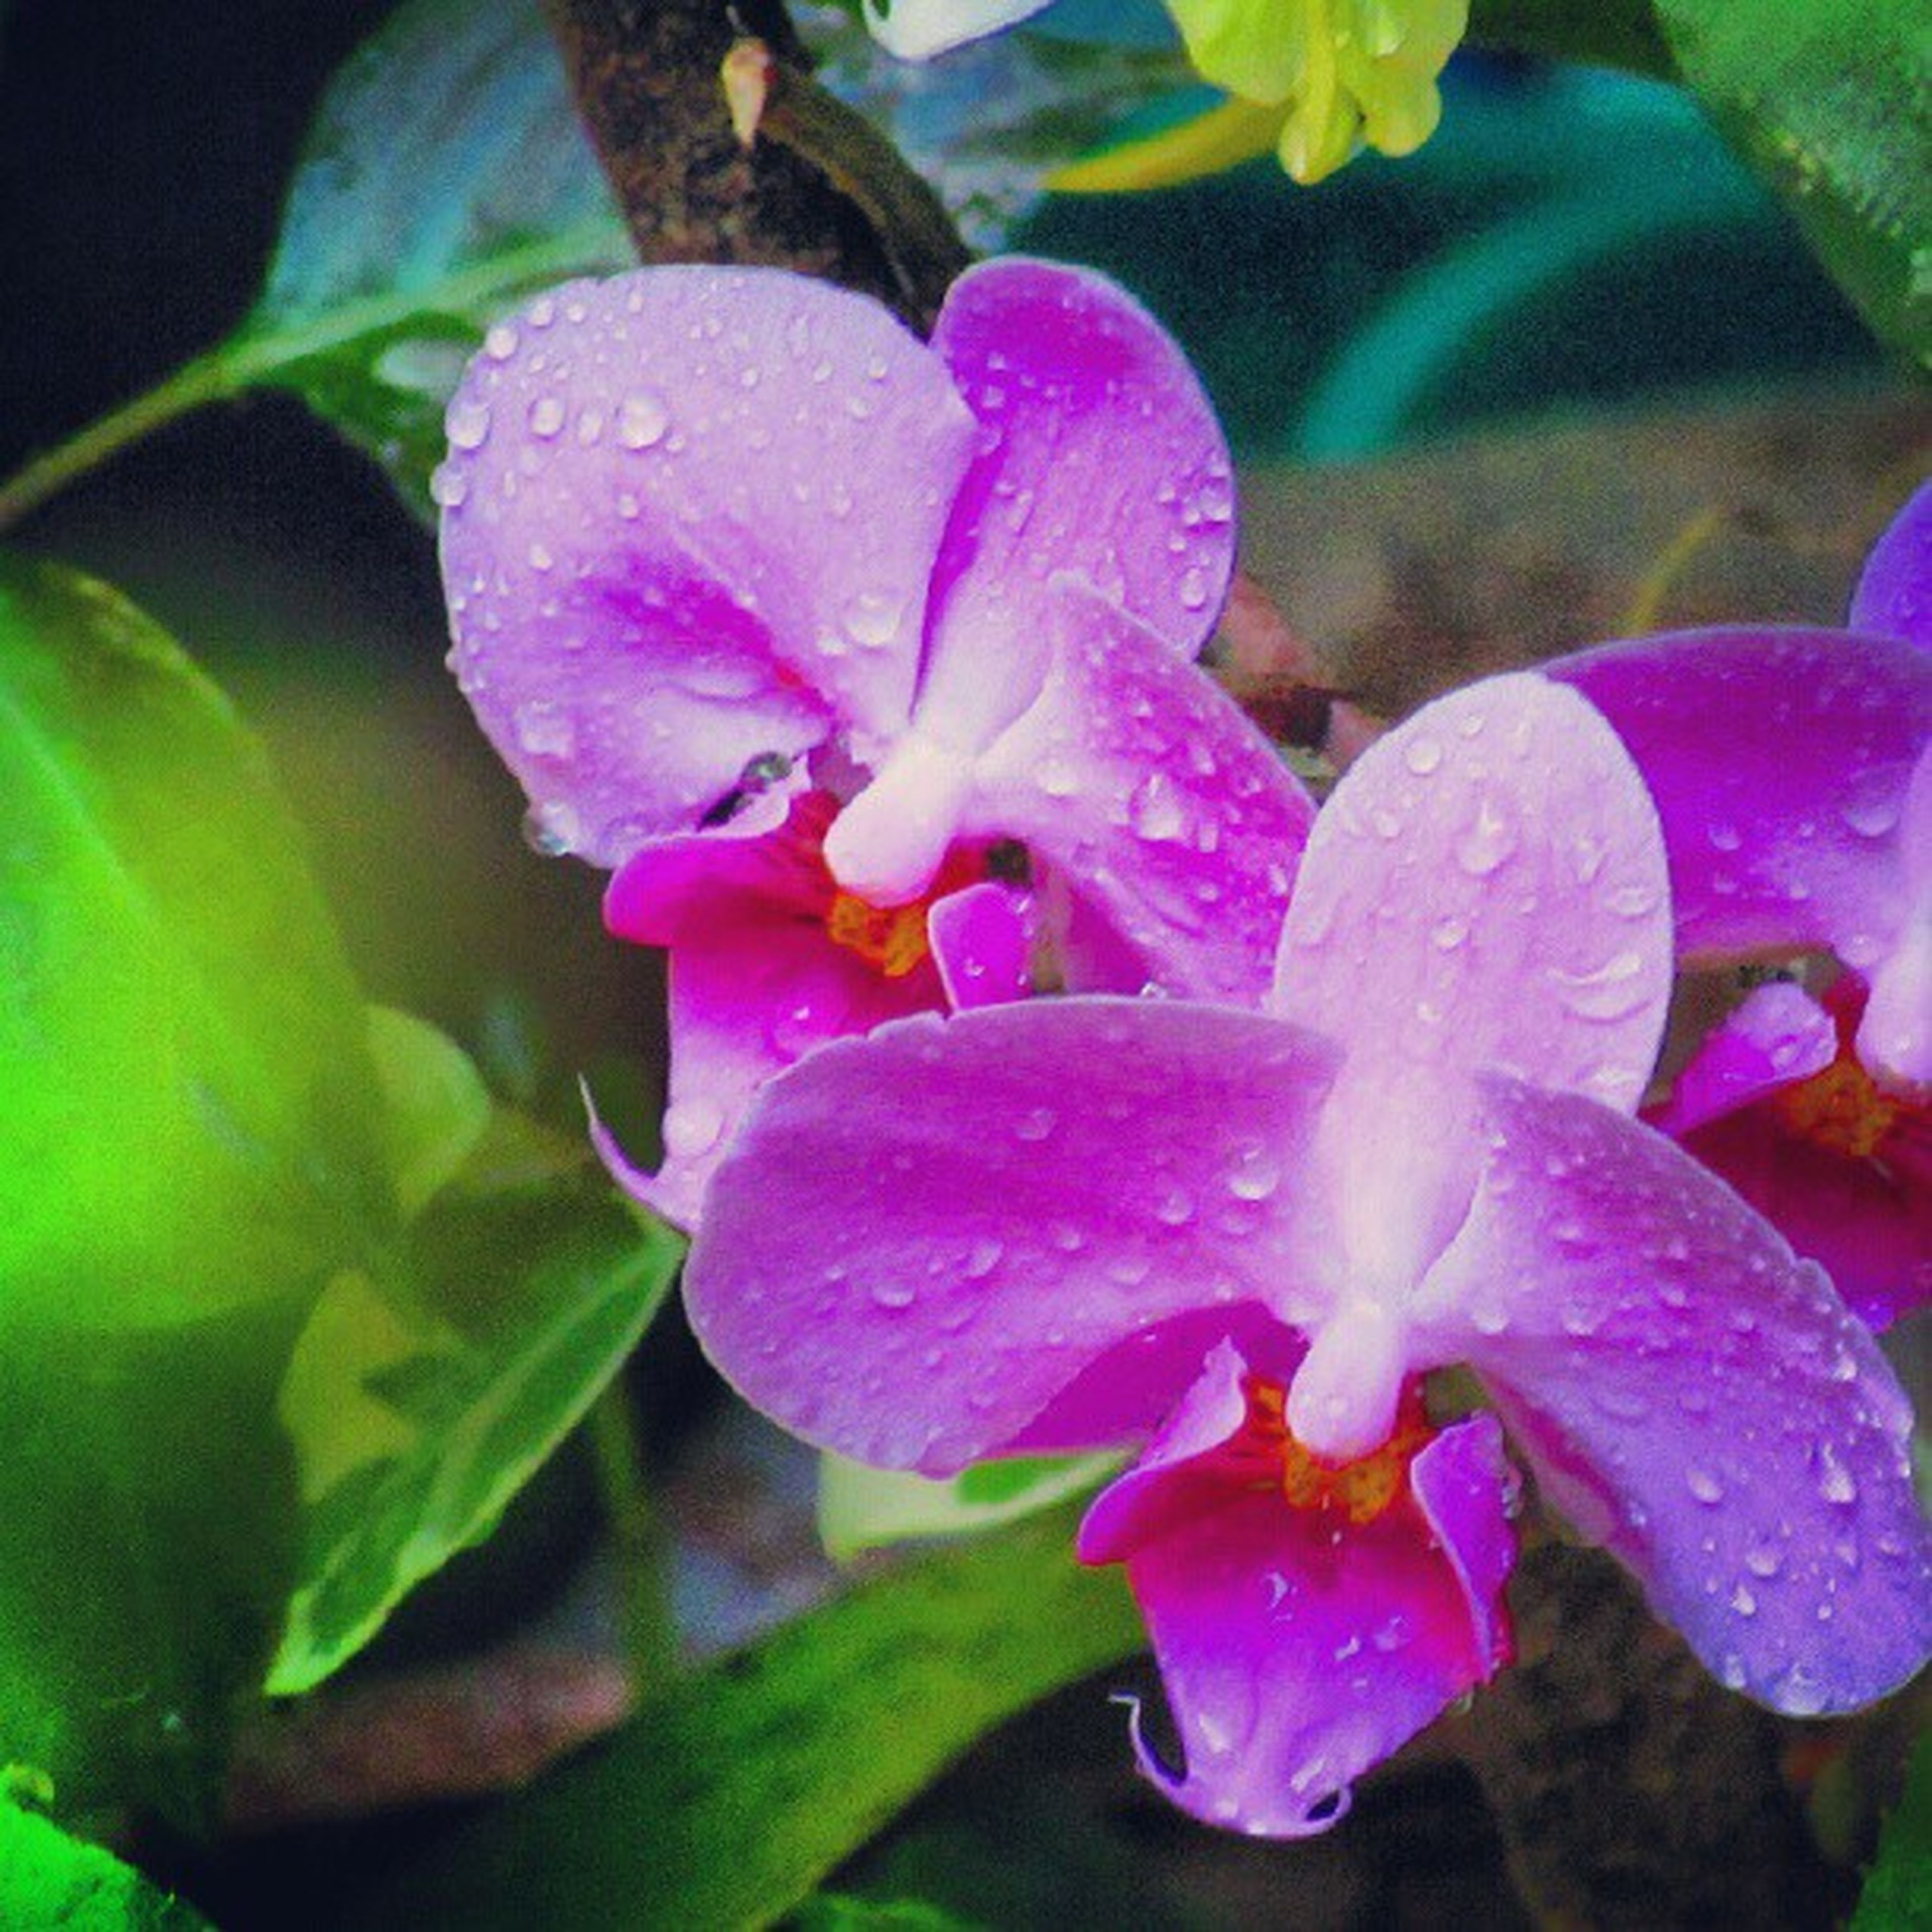 flower, freshness, petal, fragility, water, drop, growth, flower head, beauty in nature, close-up, wet, plant, blooming, nature, focus on foreground, pink color, leaf, purple, in bloom, pollen